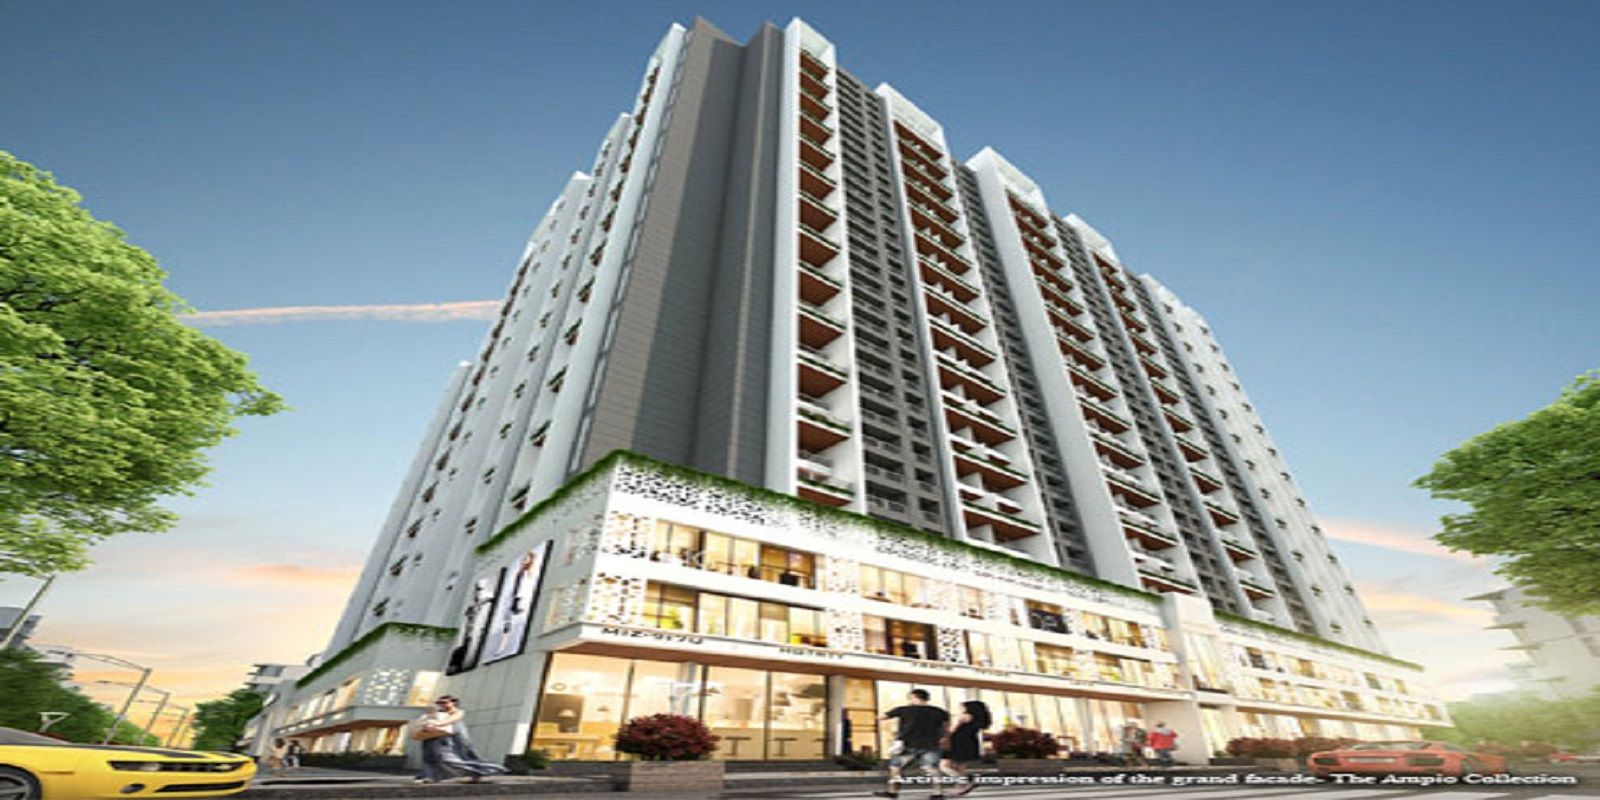 tycoons codename epicentre project project large image1